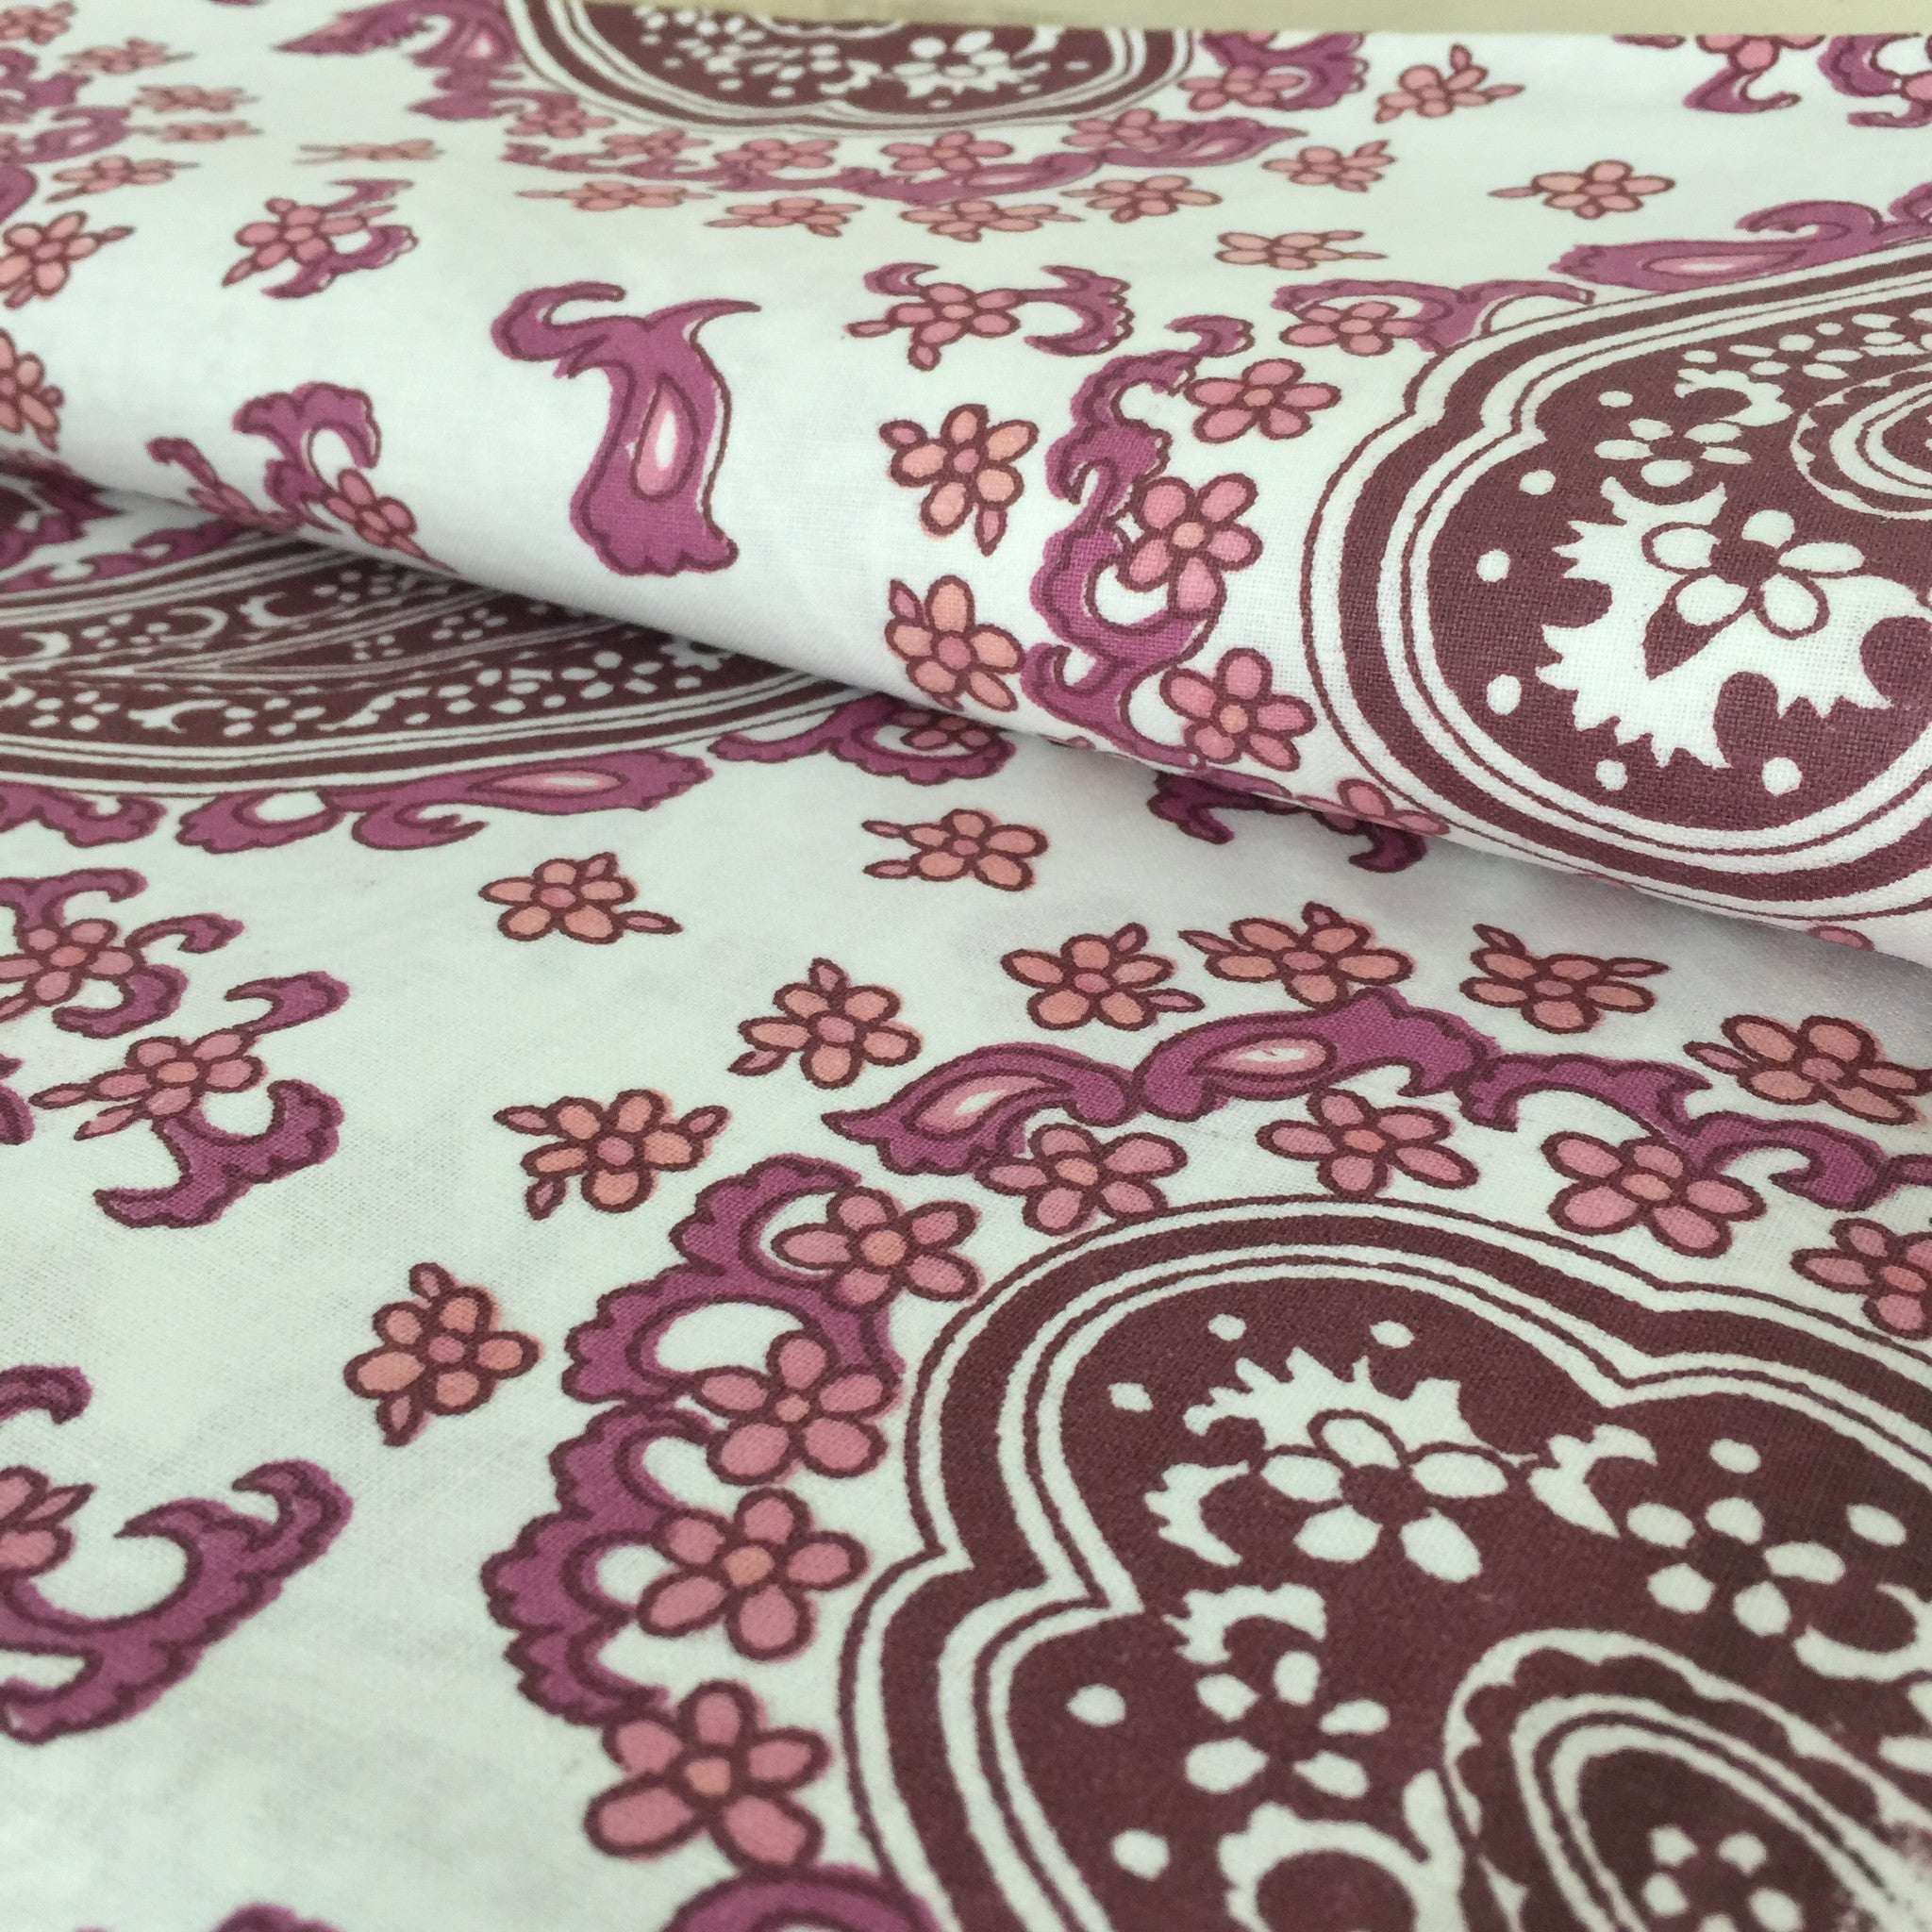 CRISP UNUSED VINTAGE Cotton Sheets x ONE PAISLEY Print FAB FABRIC - Pink Peacock  - 1